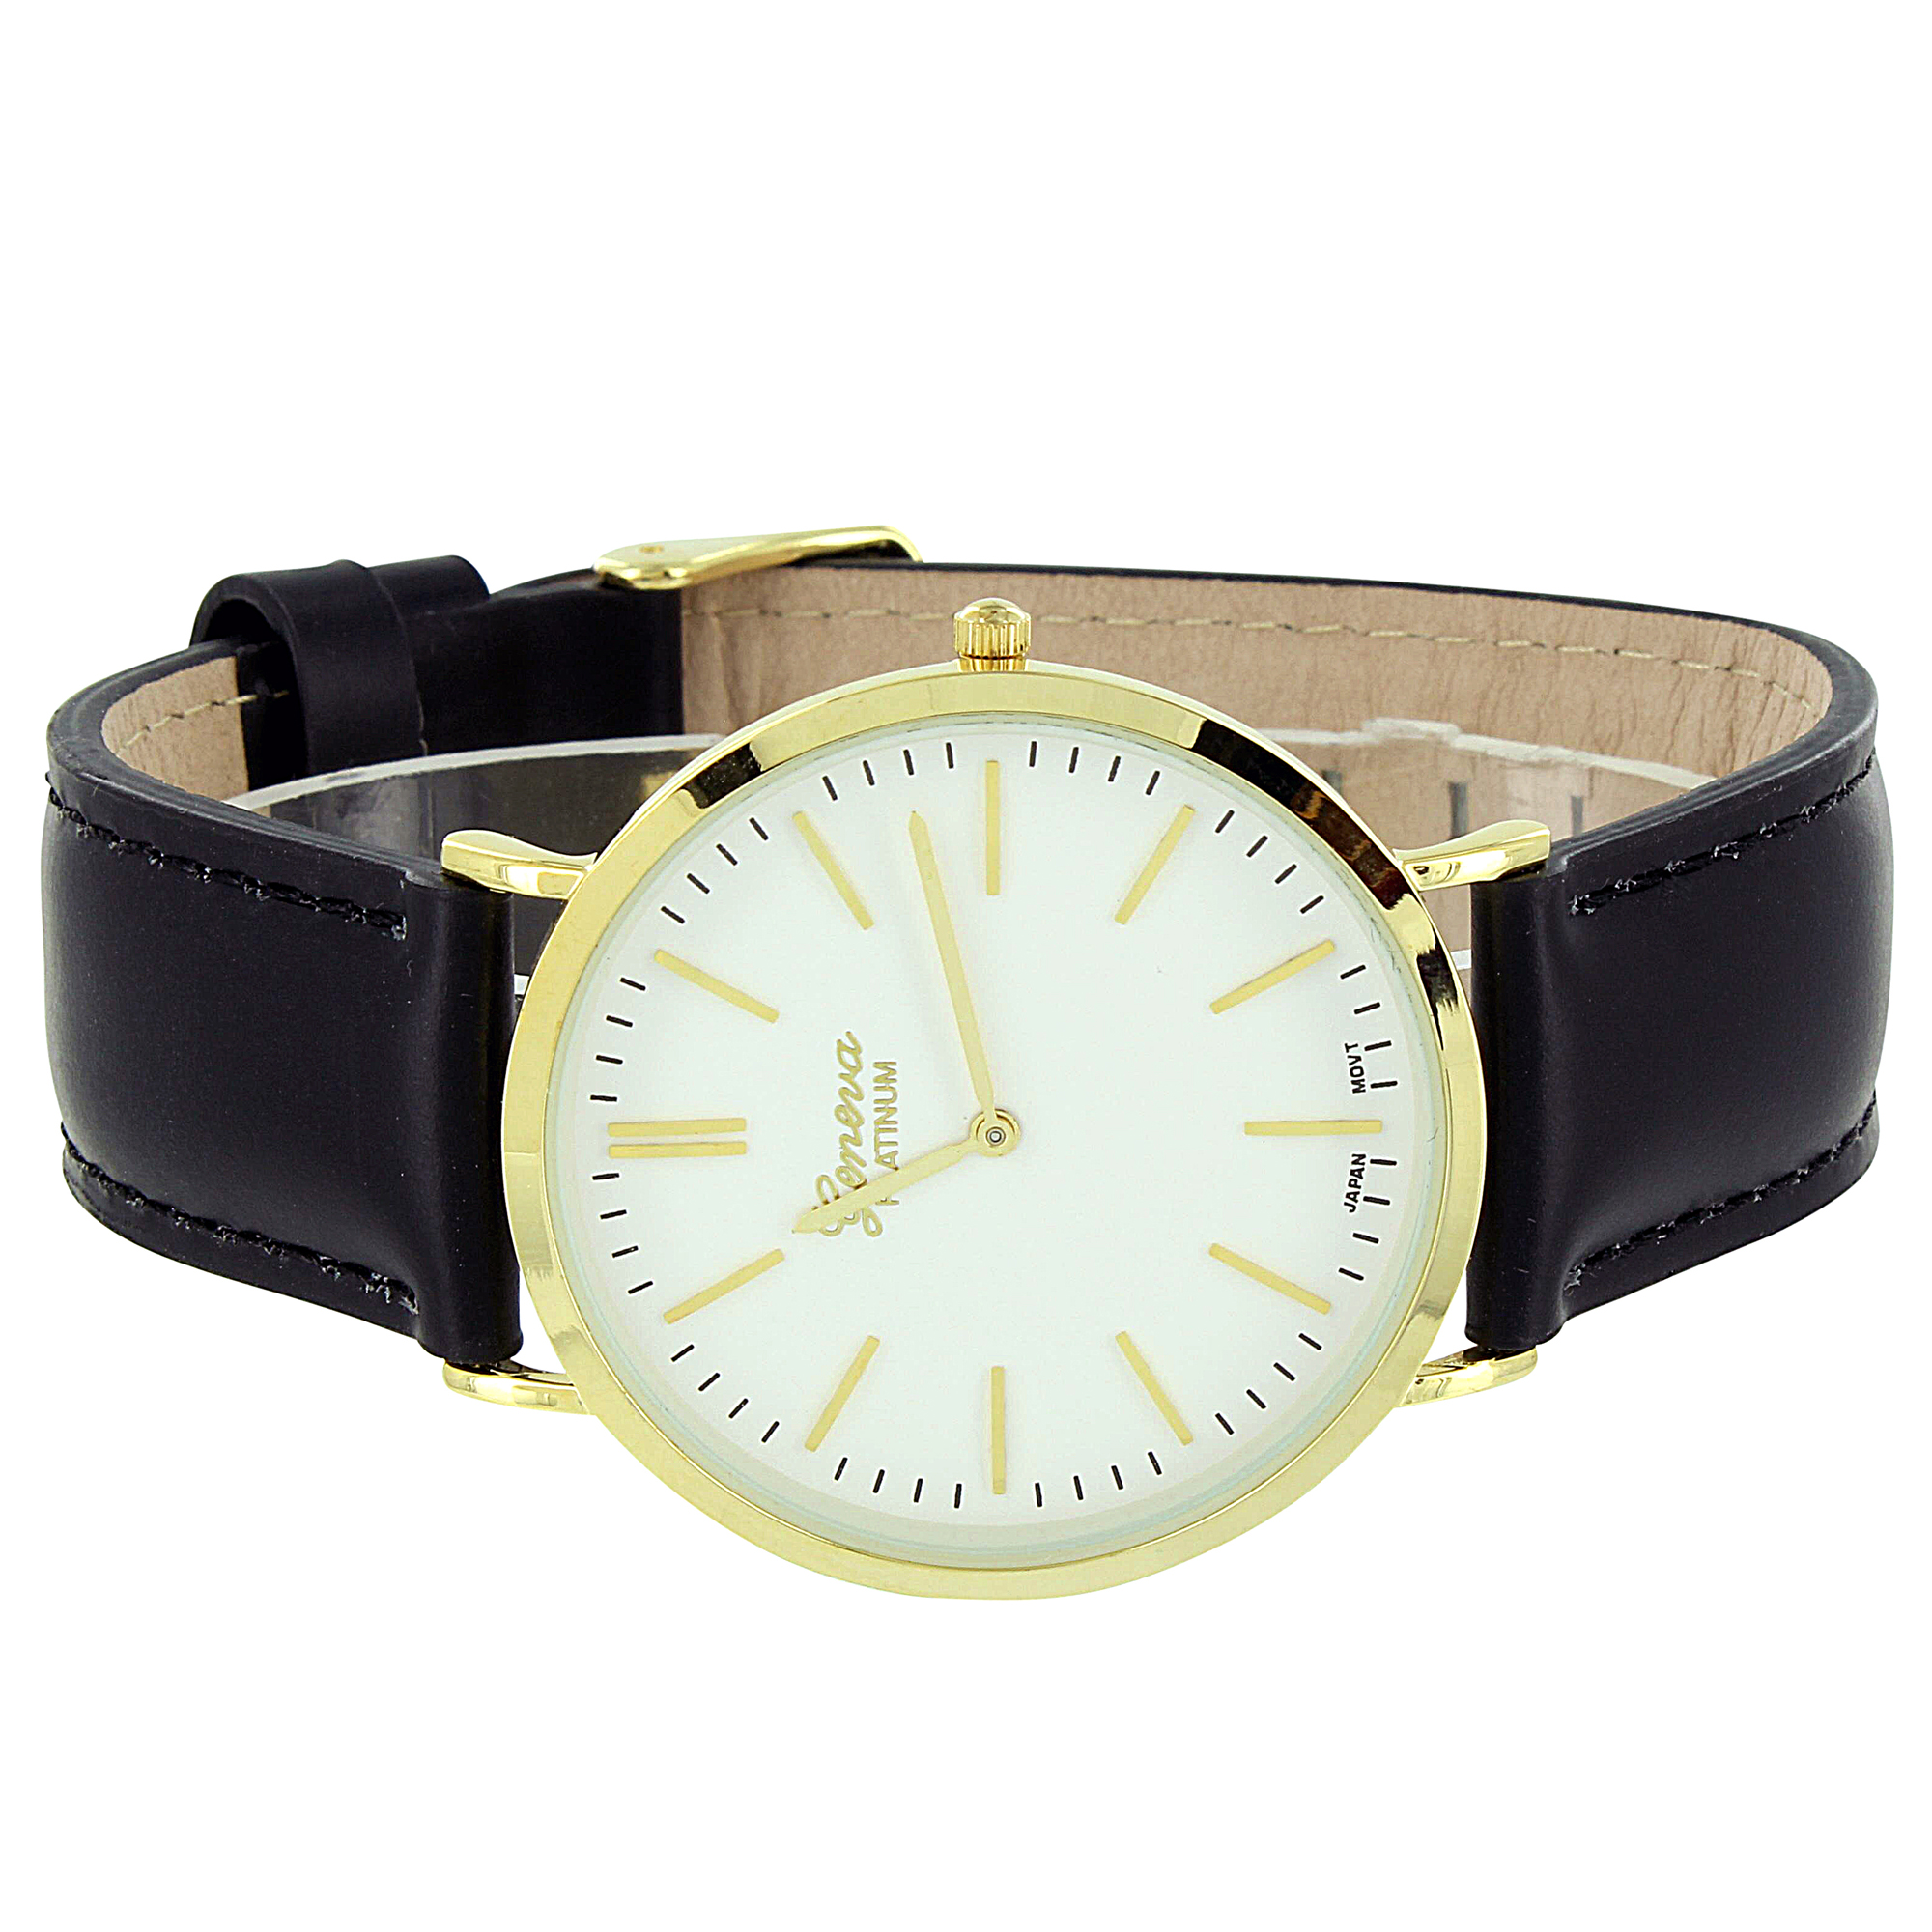 Black & Gold Watch Geneva Mens Stylish New Stainless Steel Back Leather Band Analog Display